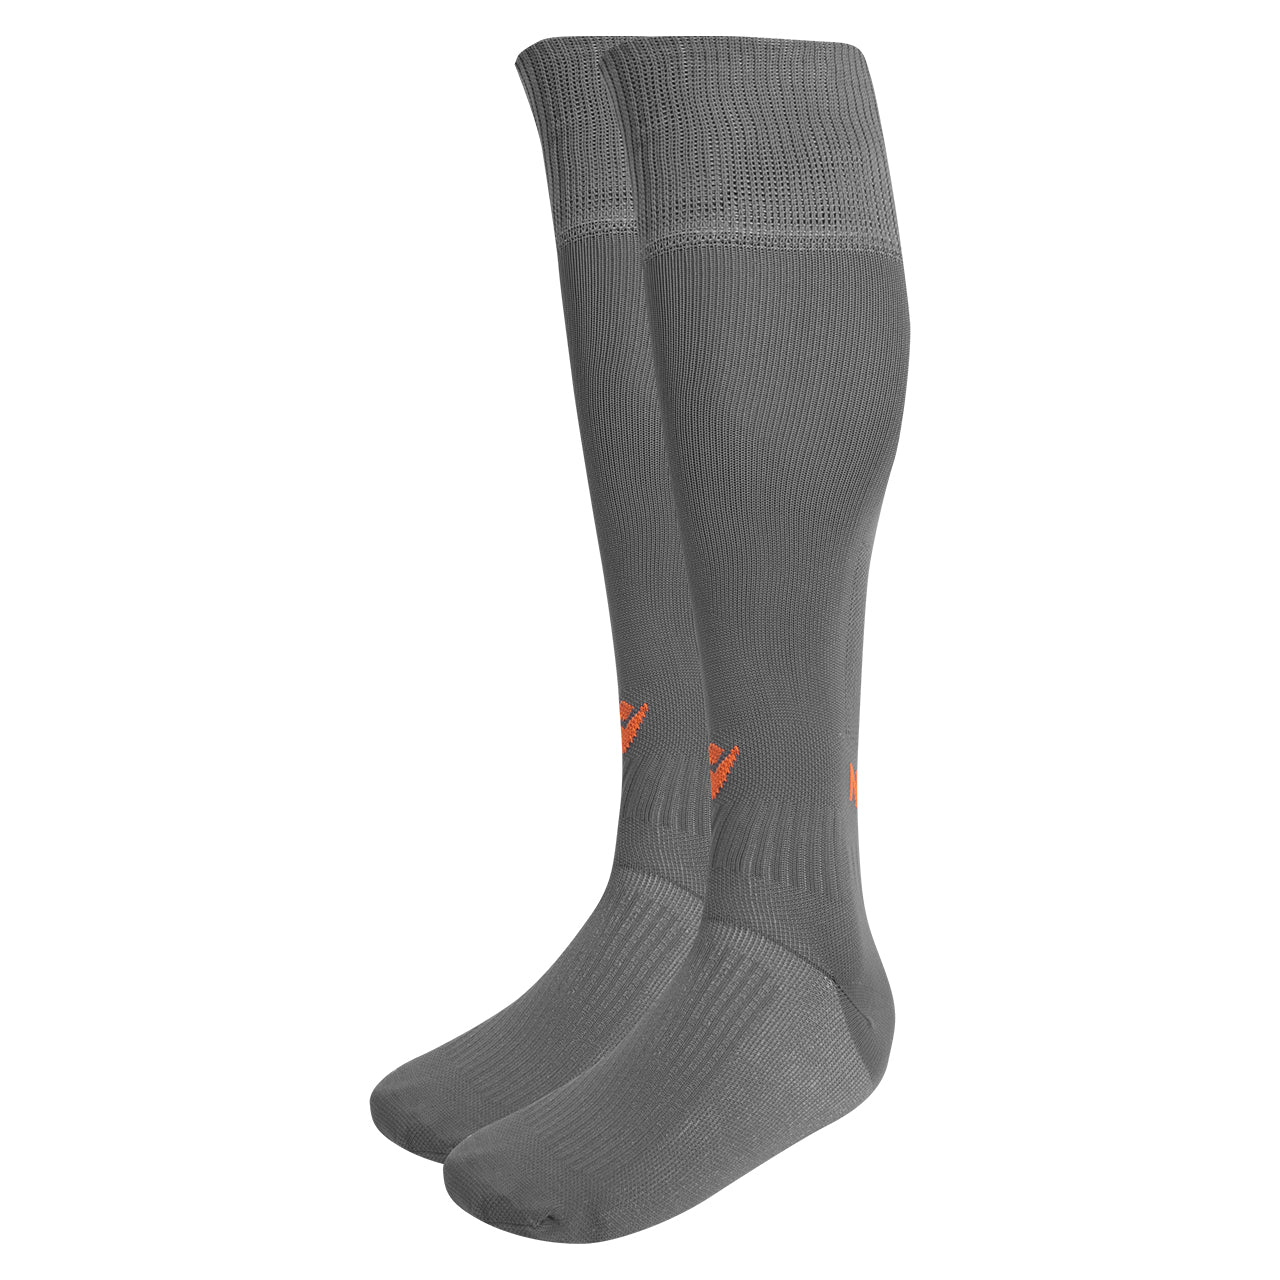 NFFC Mens Third Socks 2020/21